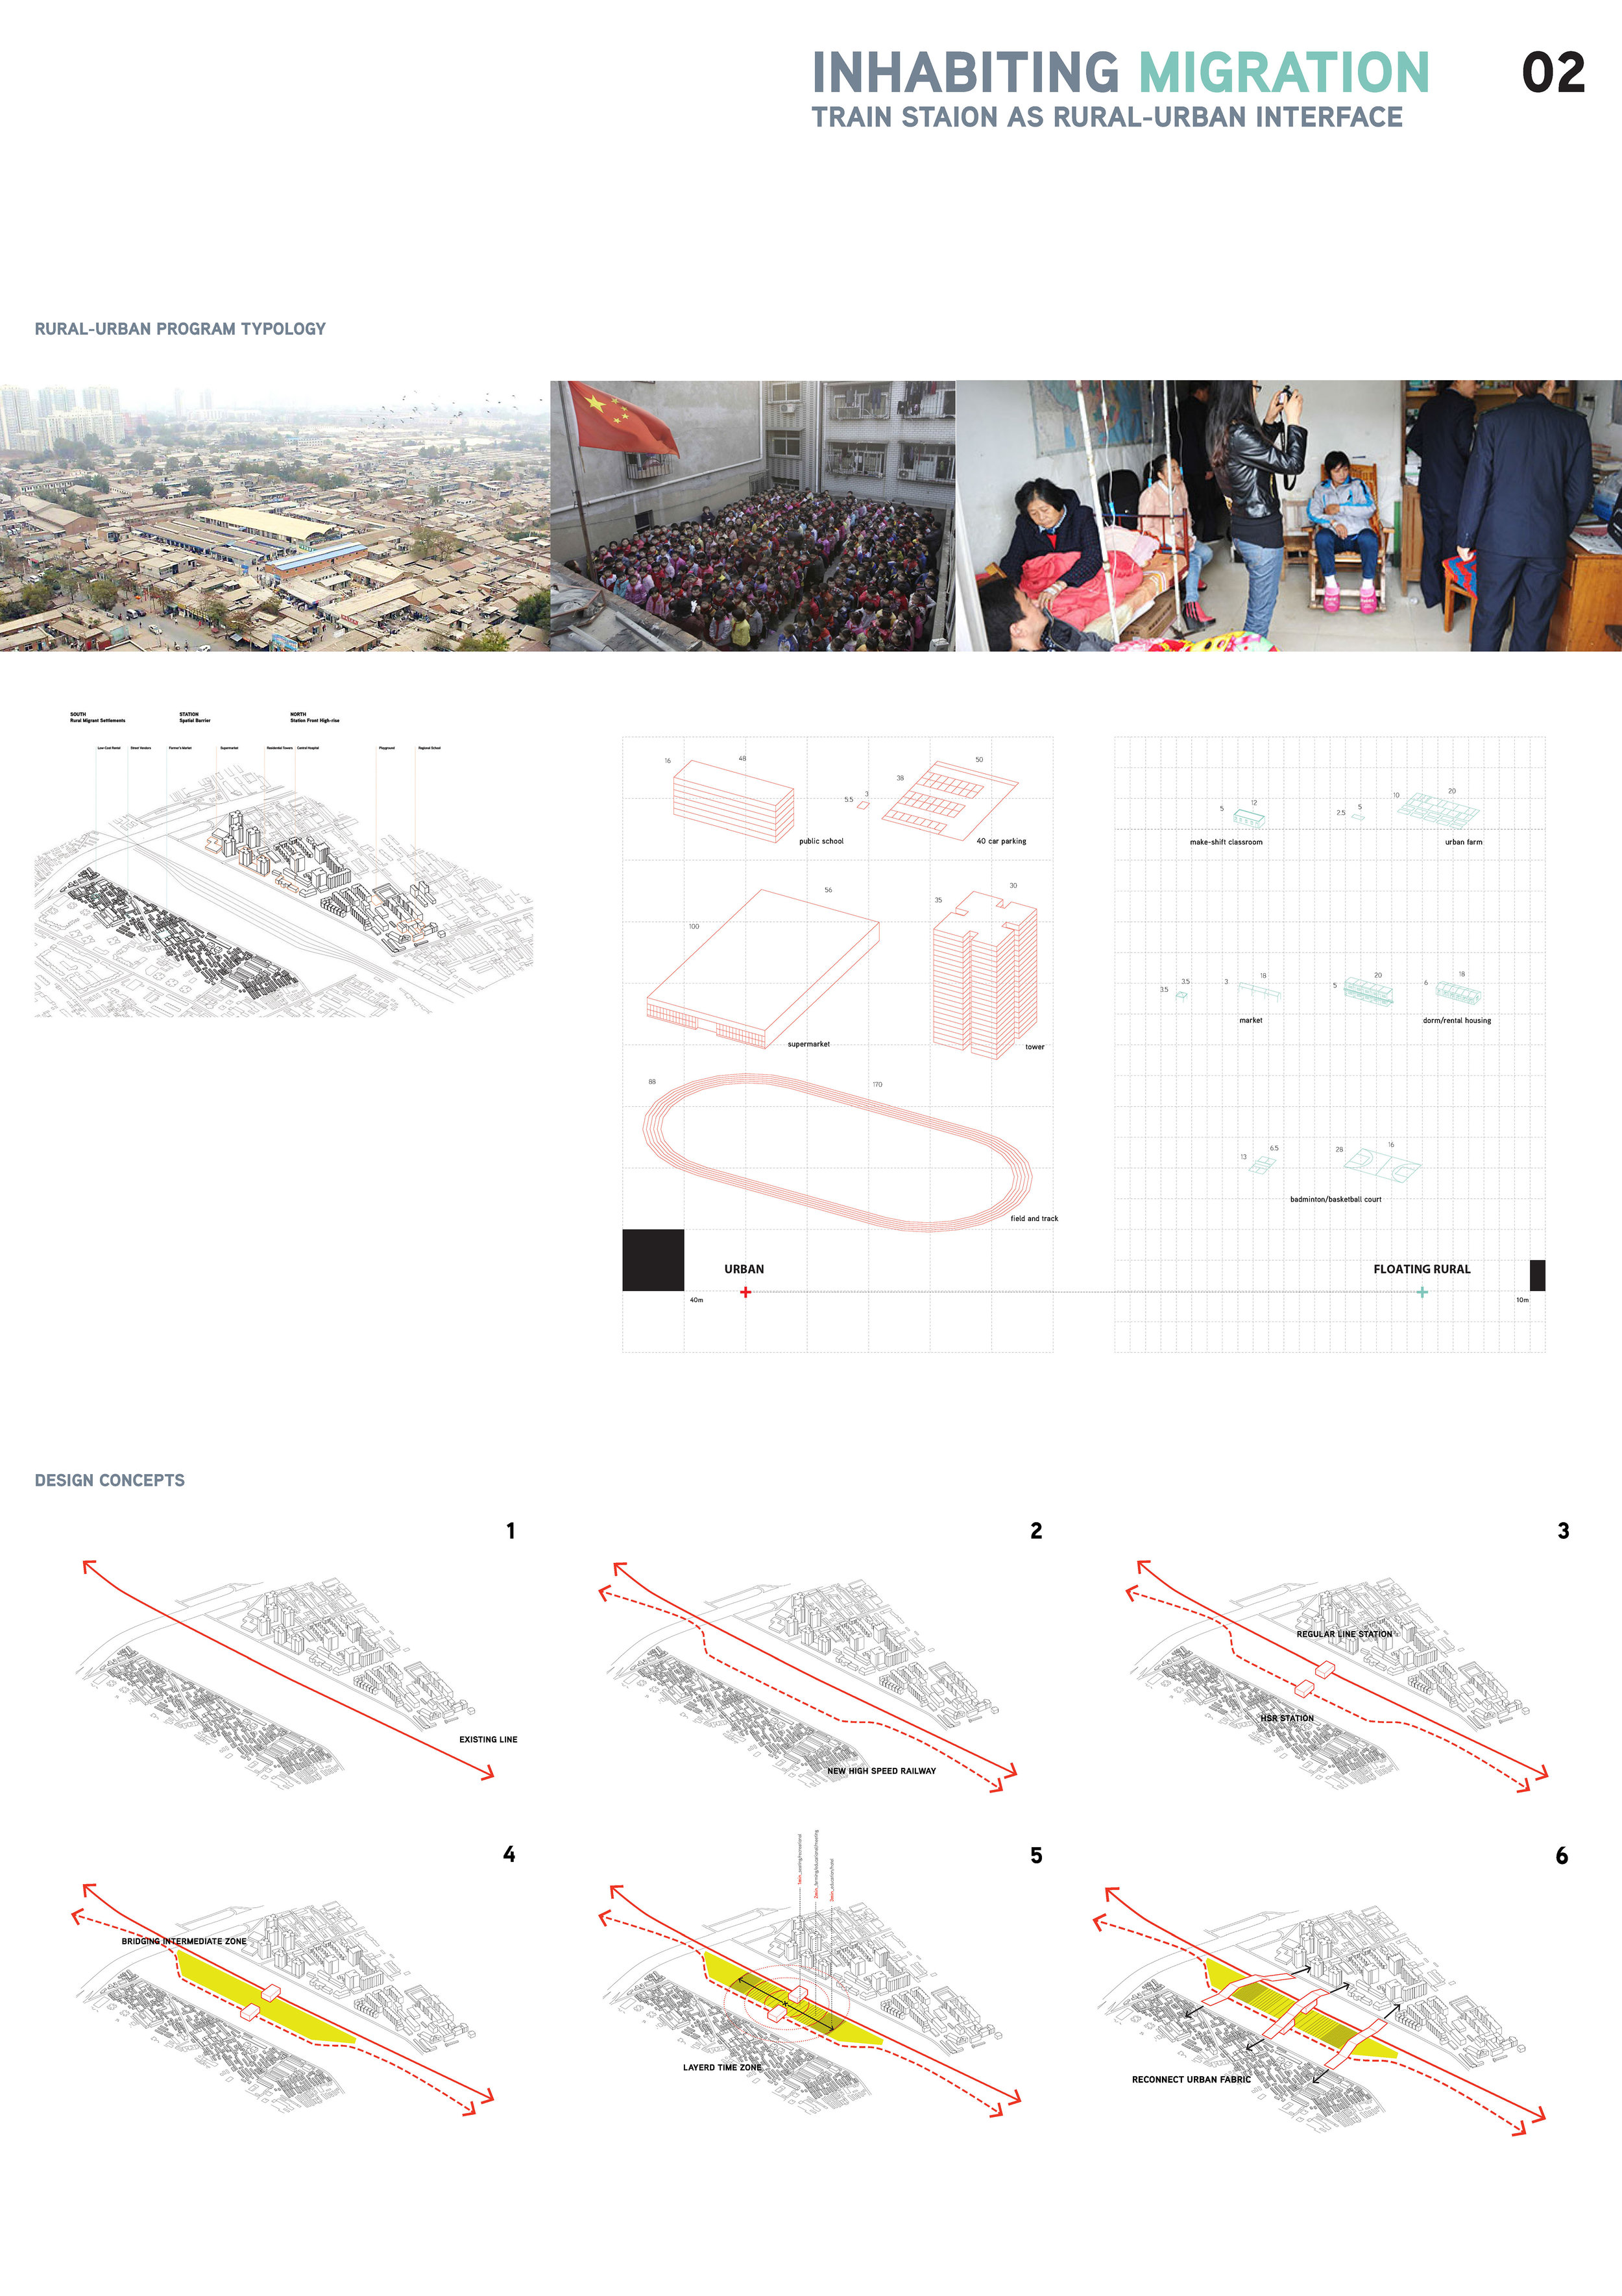 Inhabitating Migration_Site Analysis